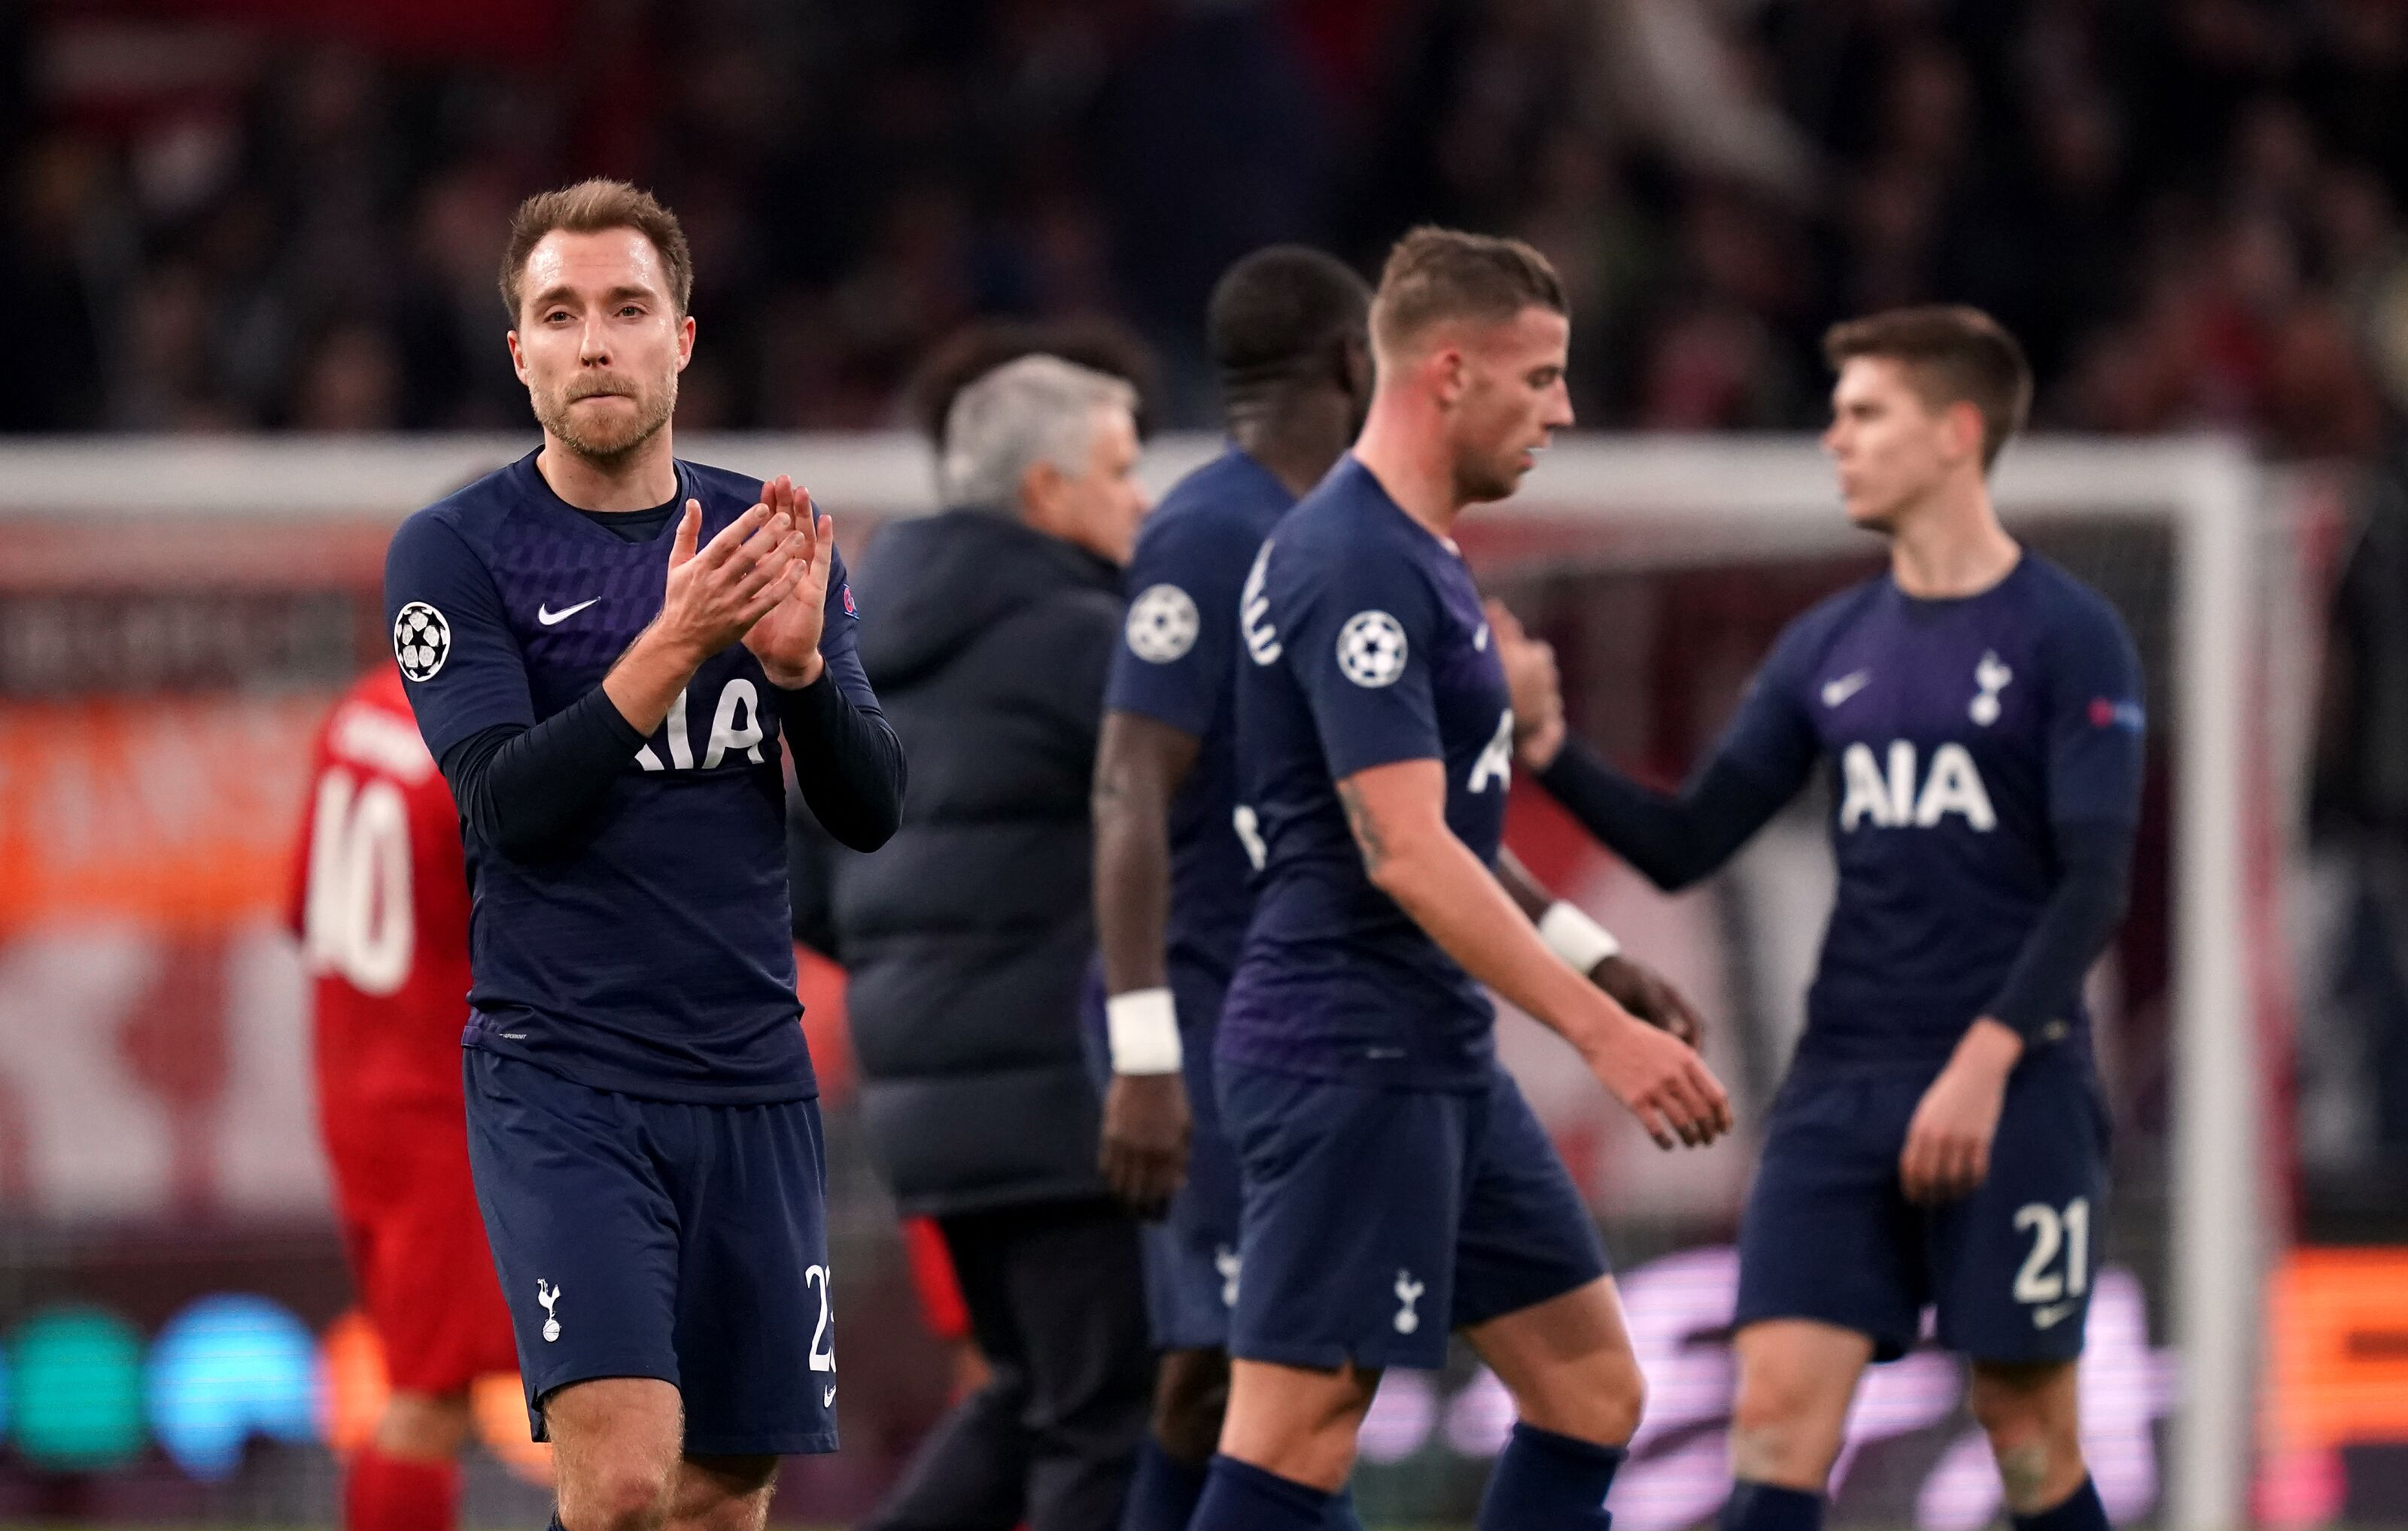 Player Ratings from Tottenham Hotspur's 3-1 defeat to Bayern Munich